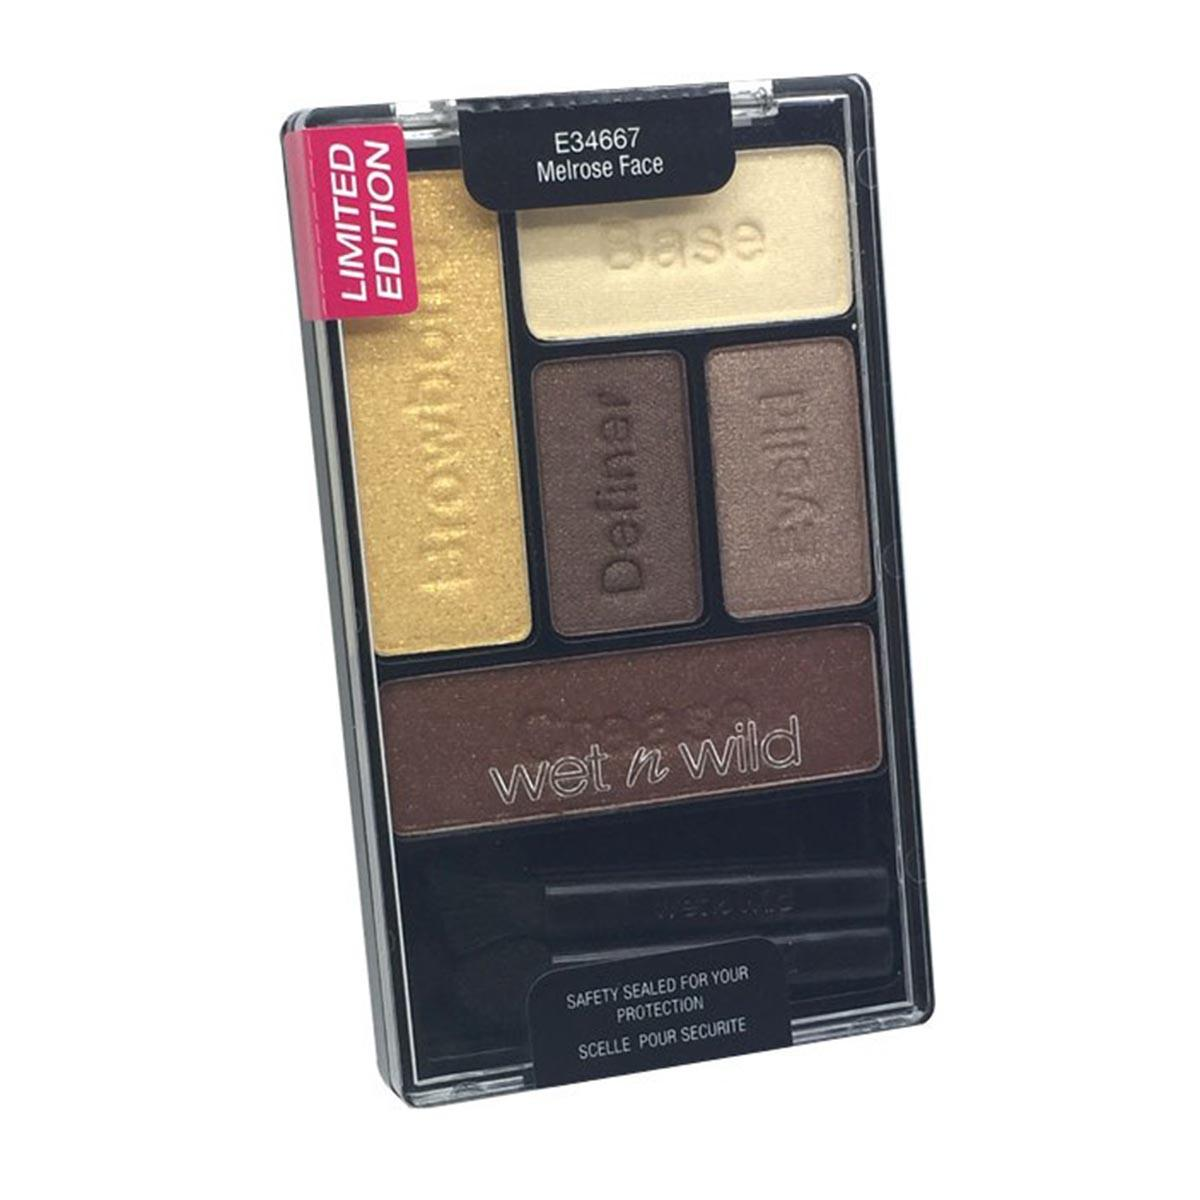 Wet n wild Eyeshadow Melrose Face